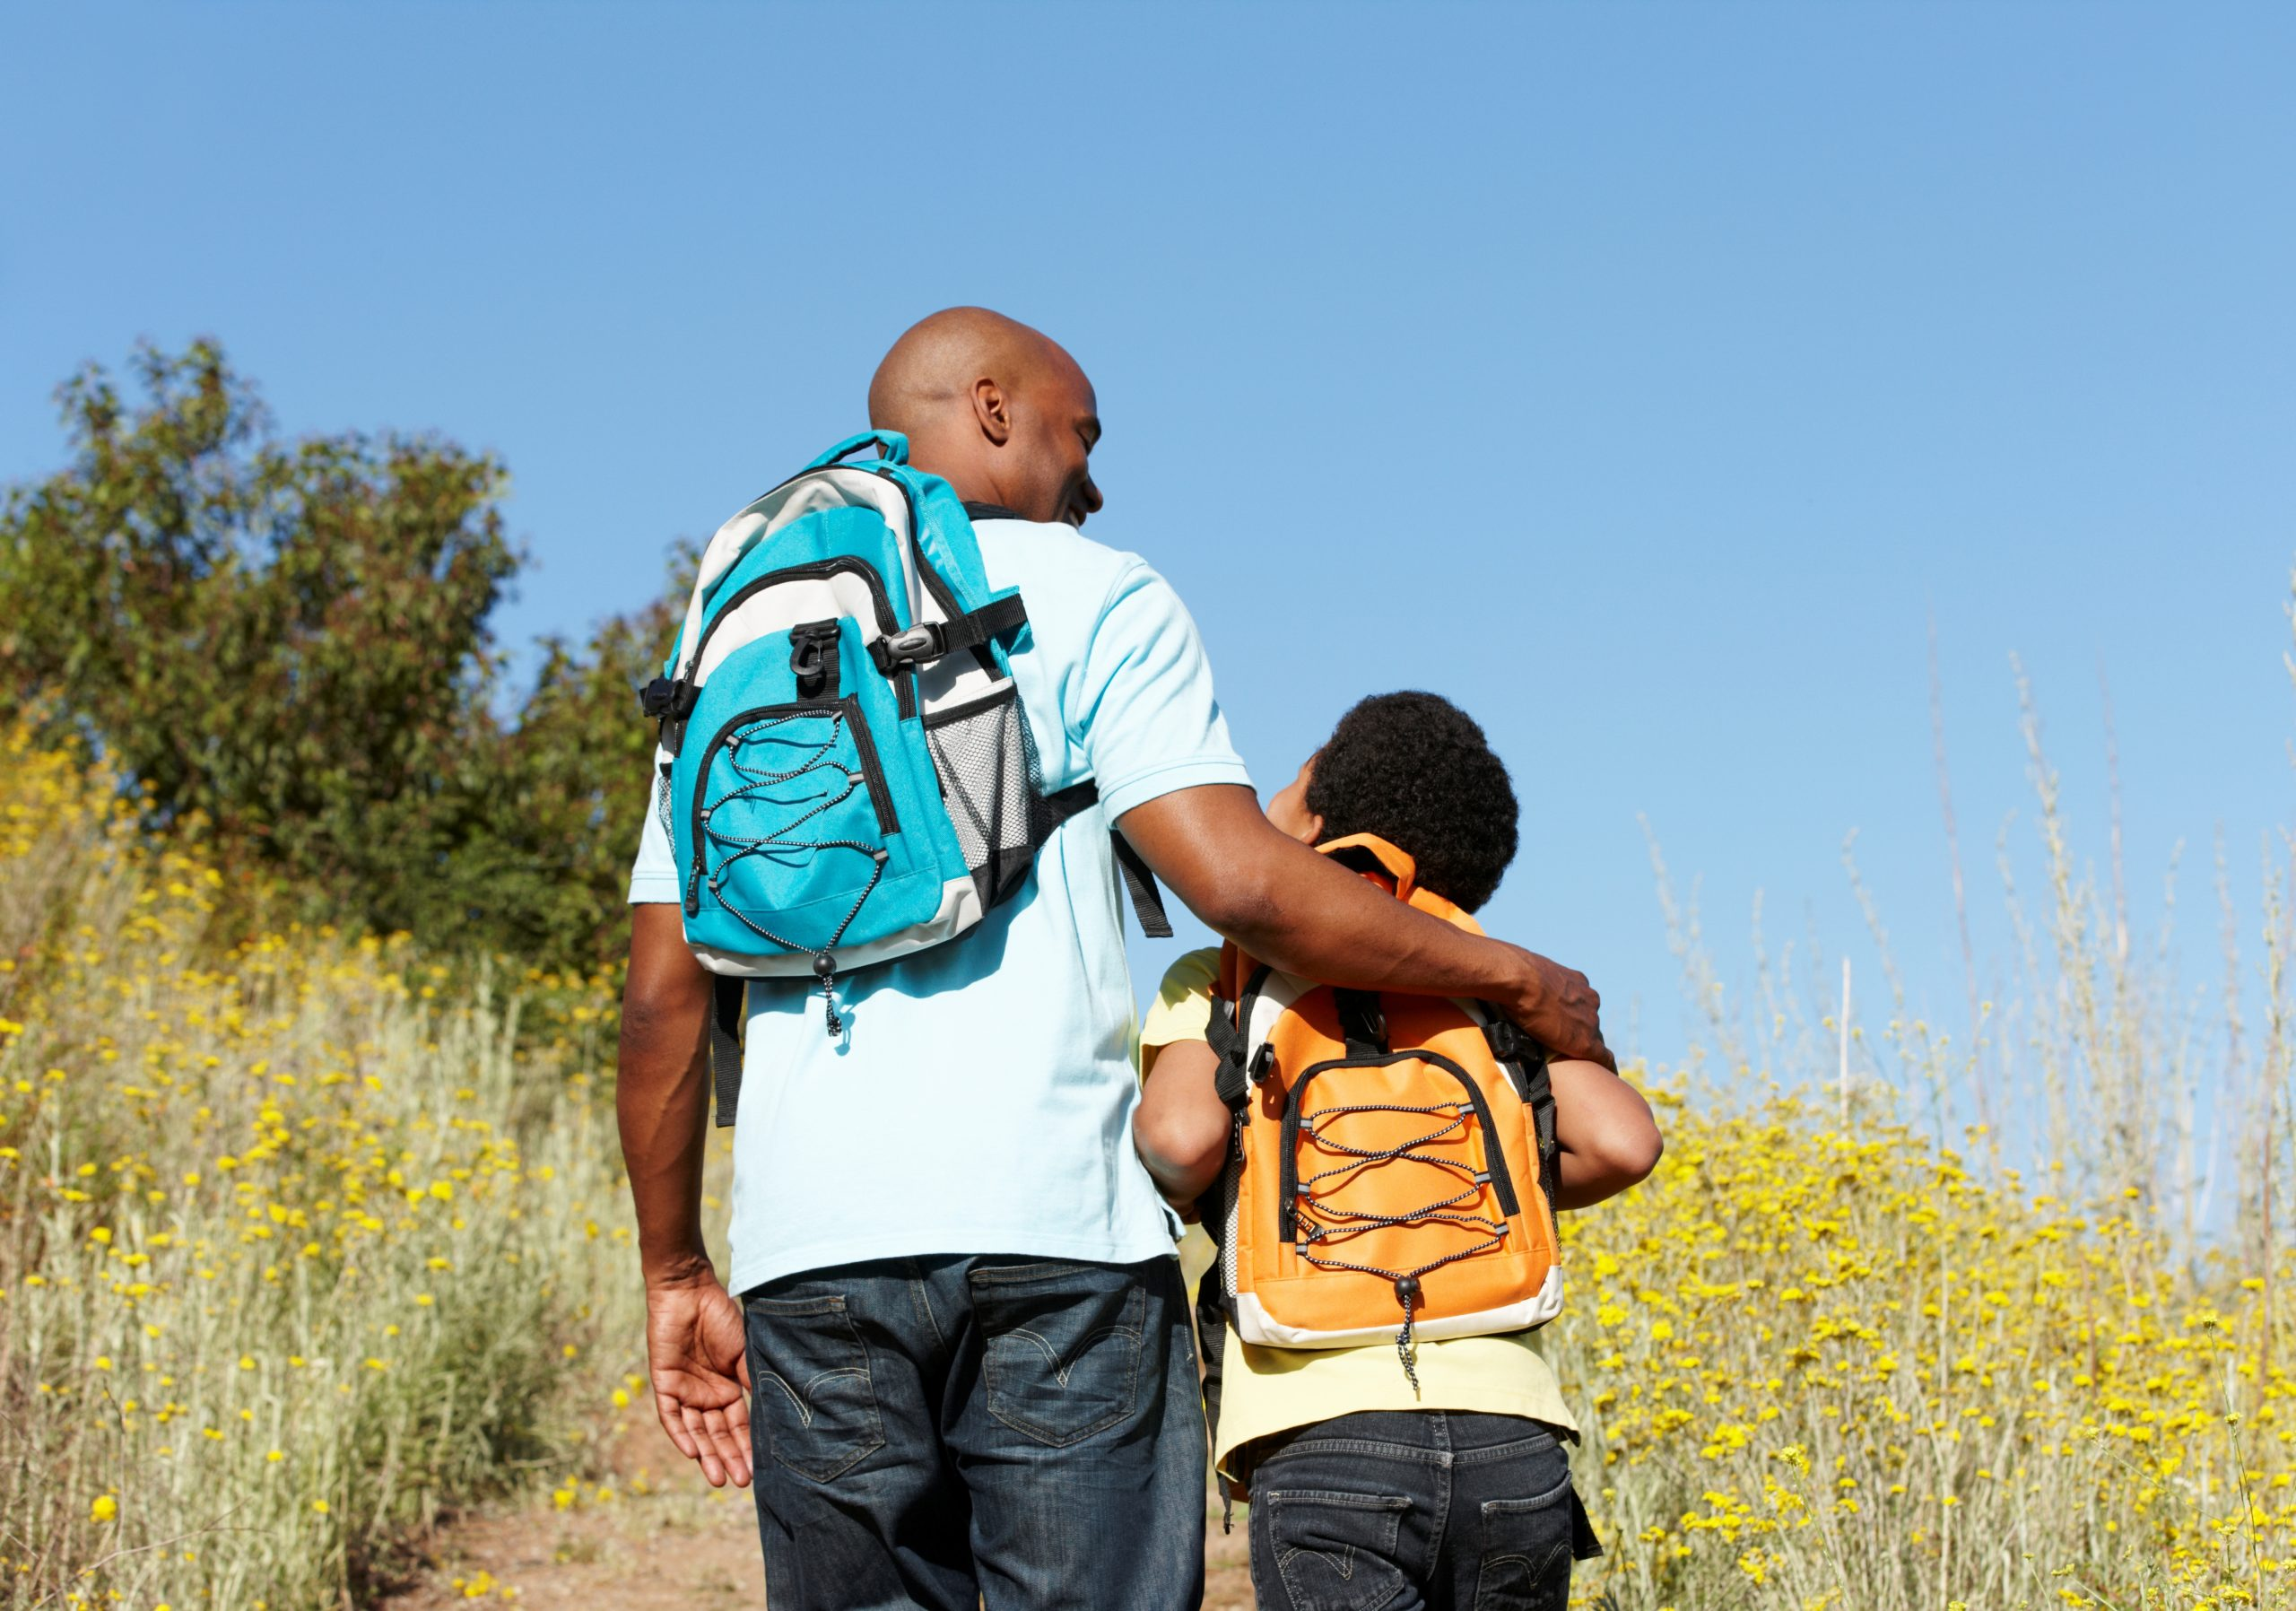 Father and son on hike